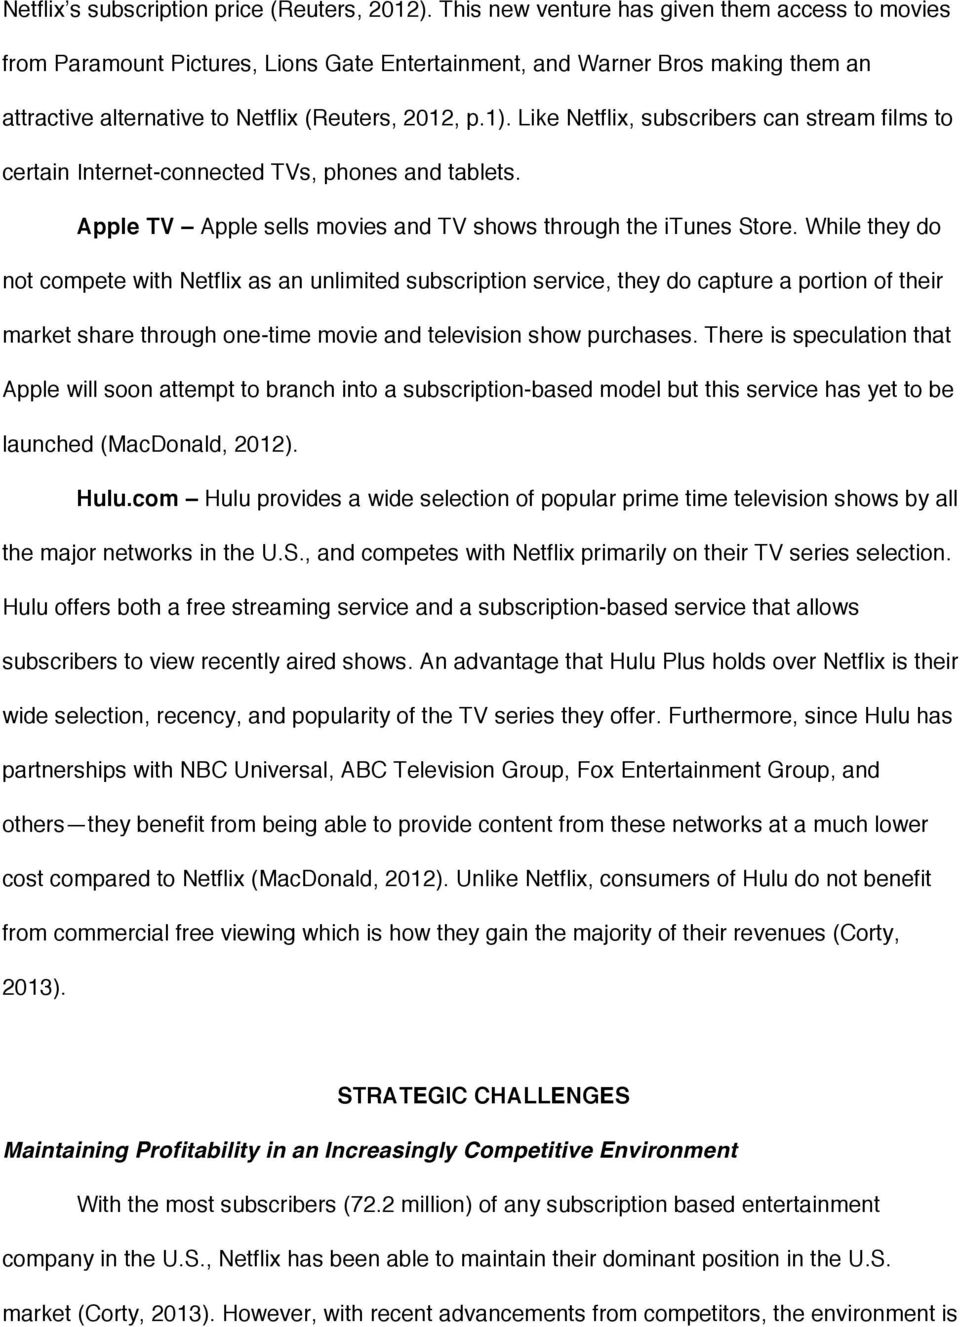 Like Netflix, subscribers can stream films to certain Internet-connected TVs, phones and tablets. Apple TV Apple sells movies and TV shows through the itunes Store.